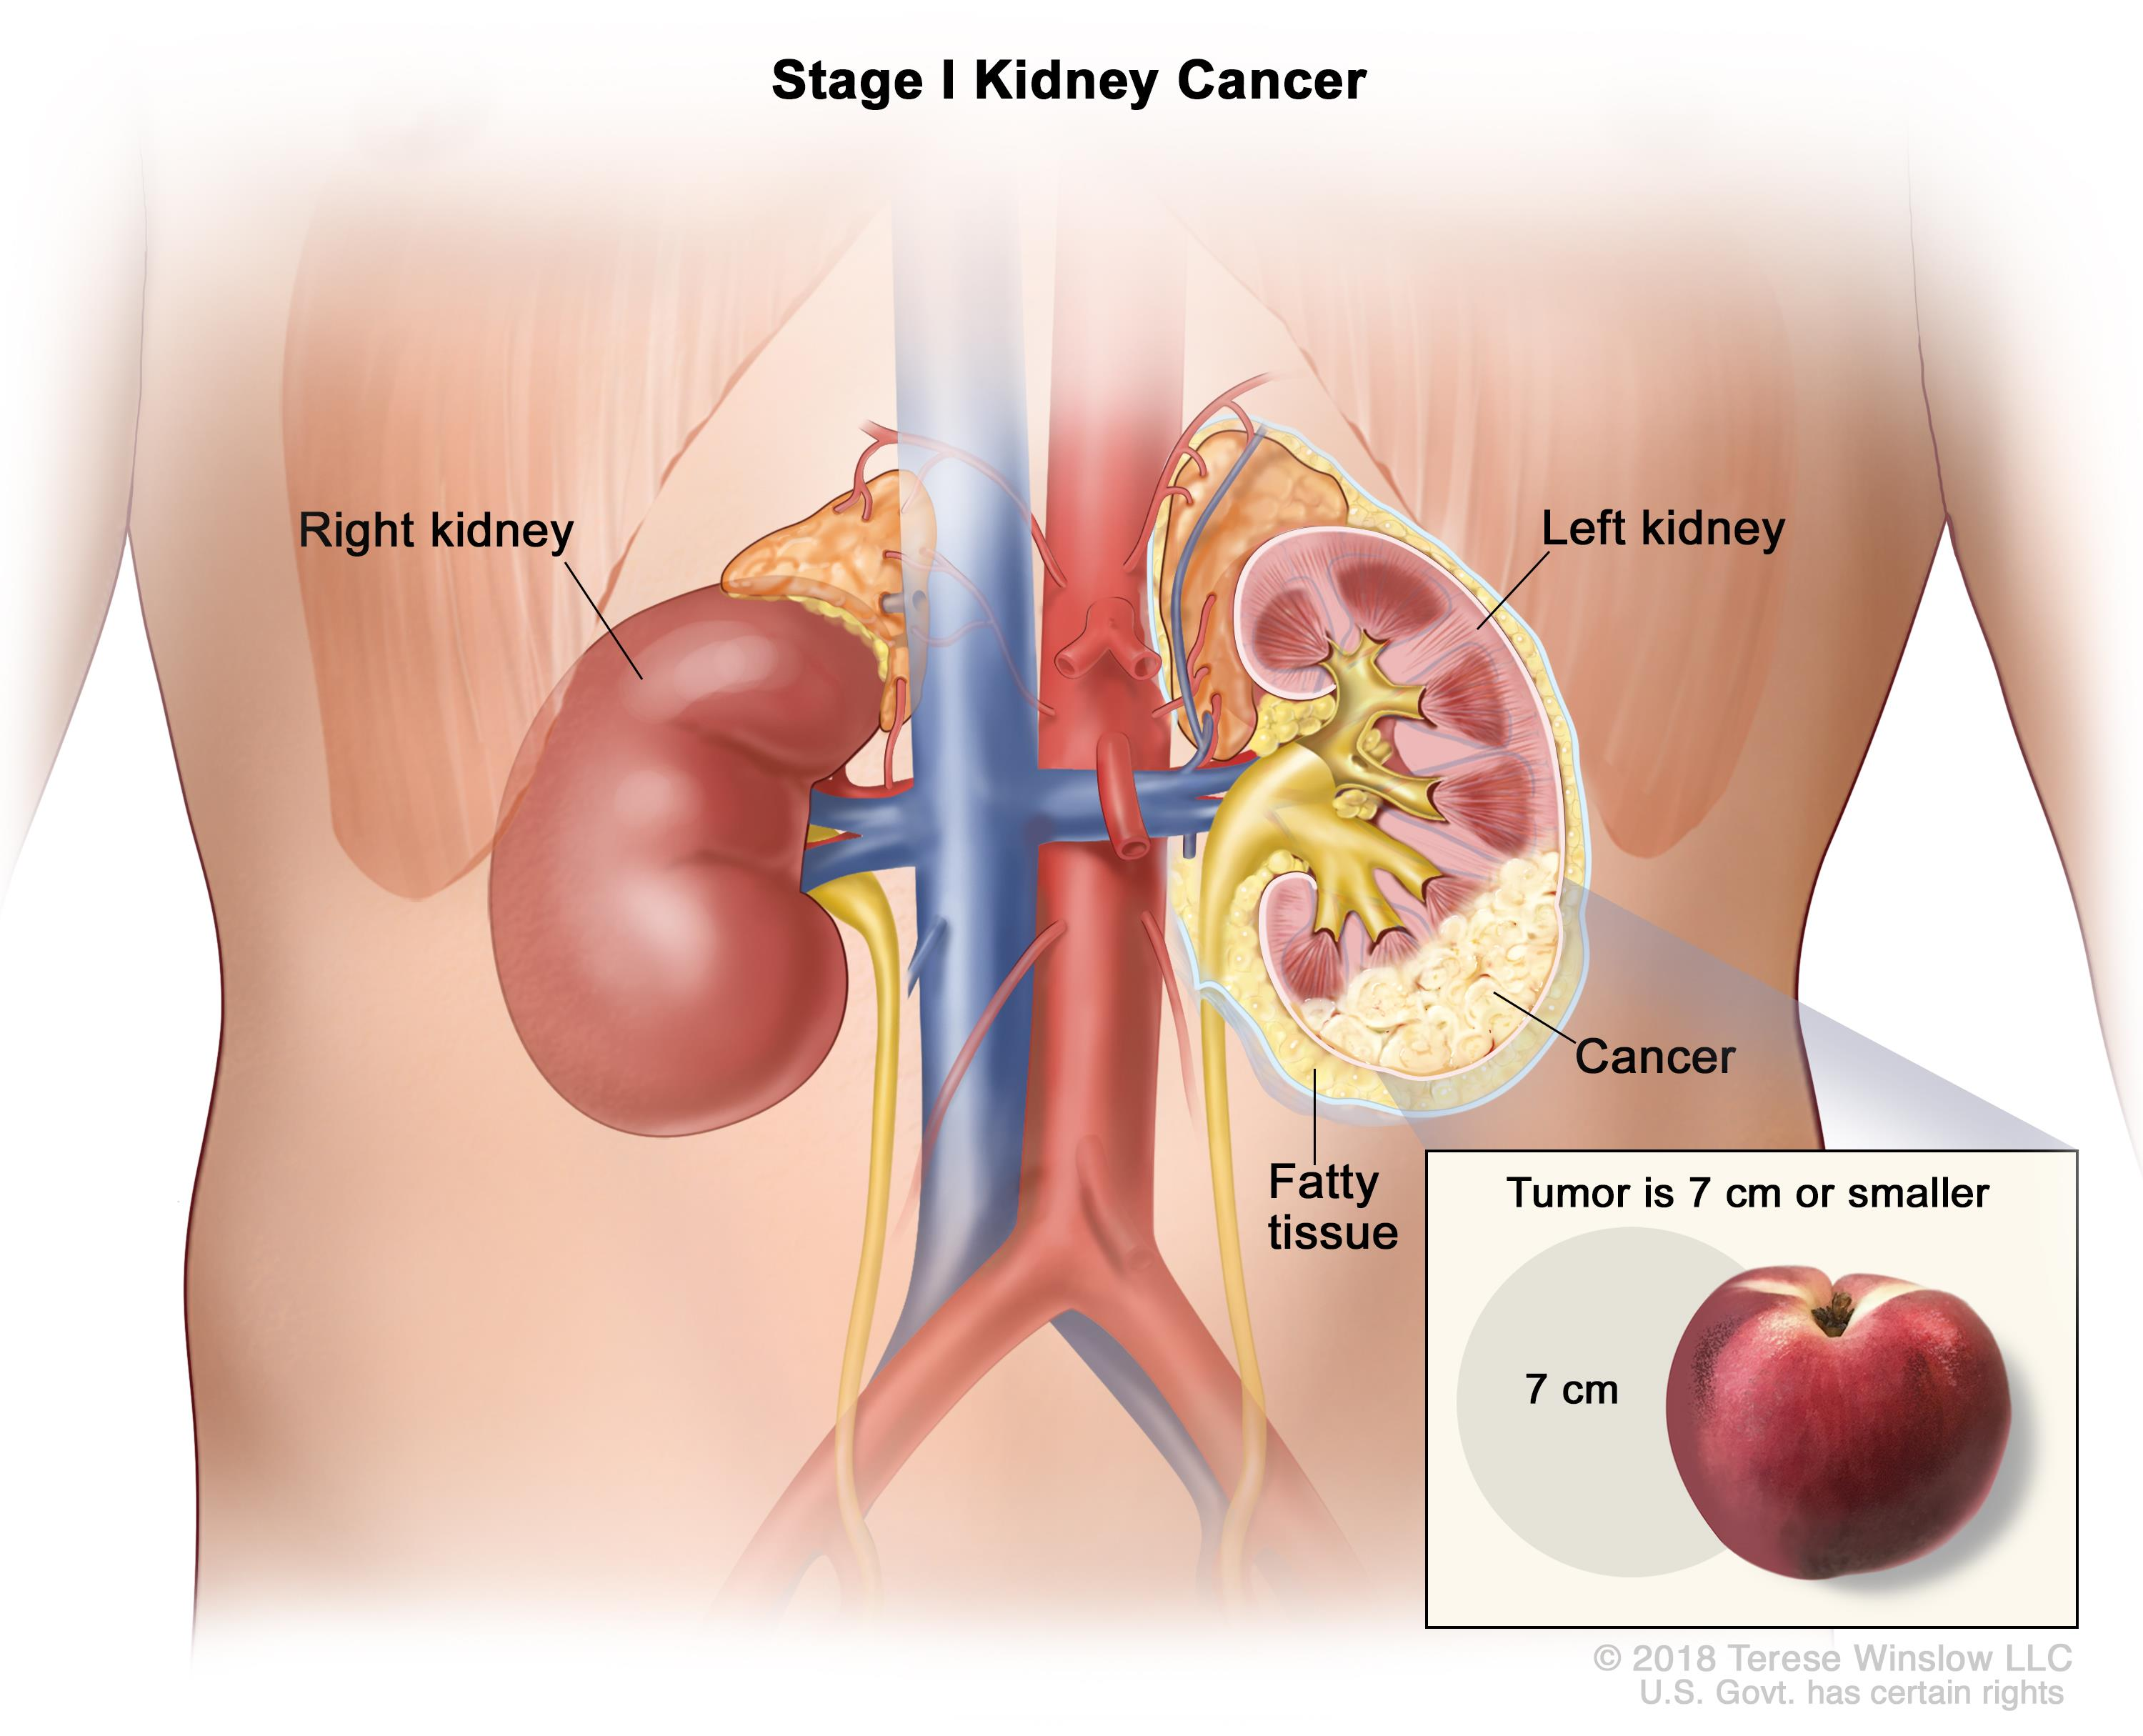 Kidney Renal Cell Cancer Treatment Robert H Lurie Comprehensive